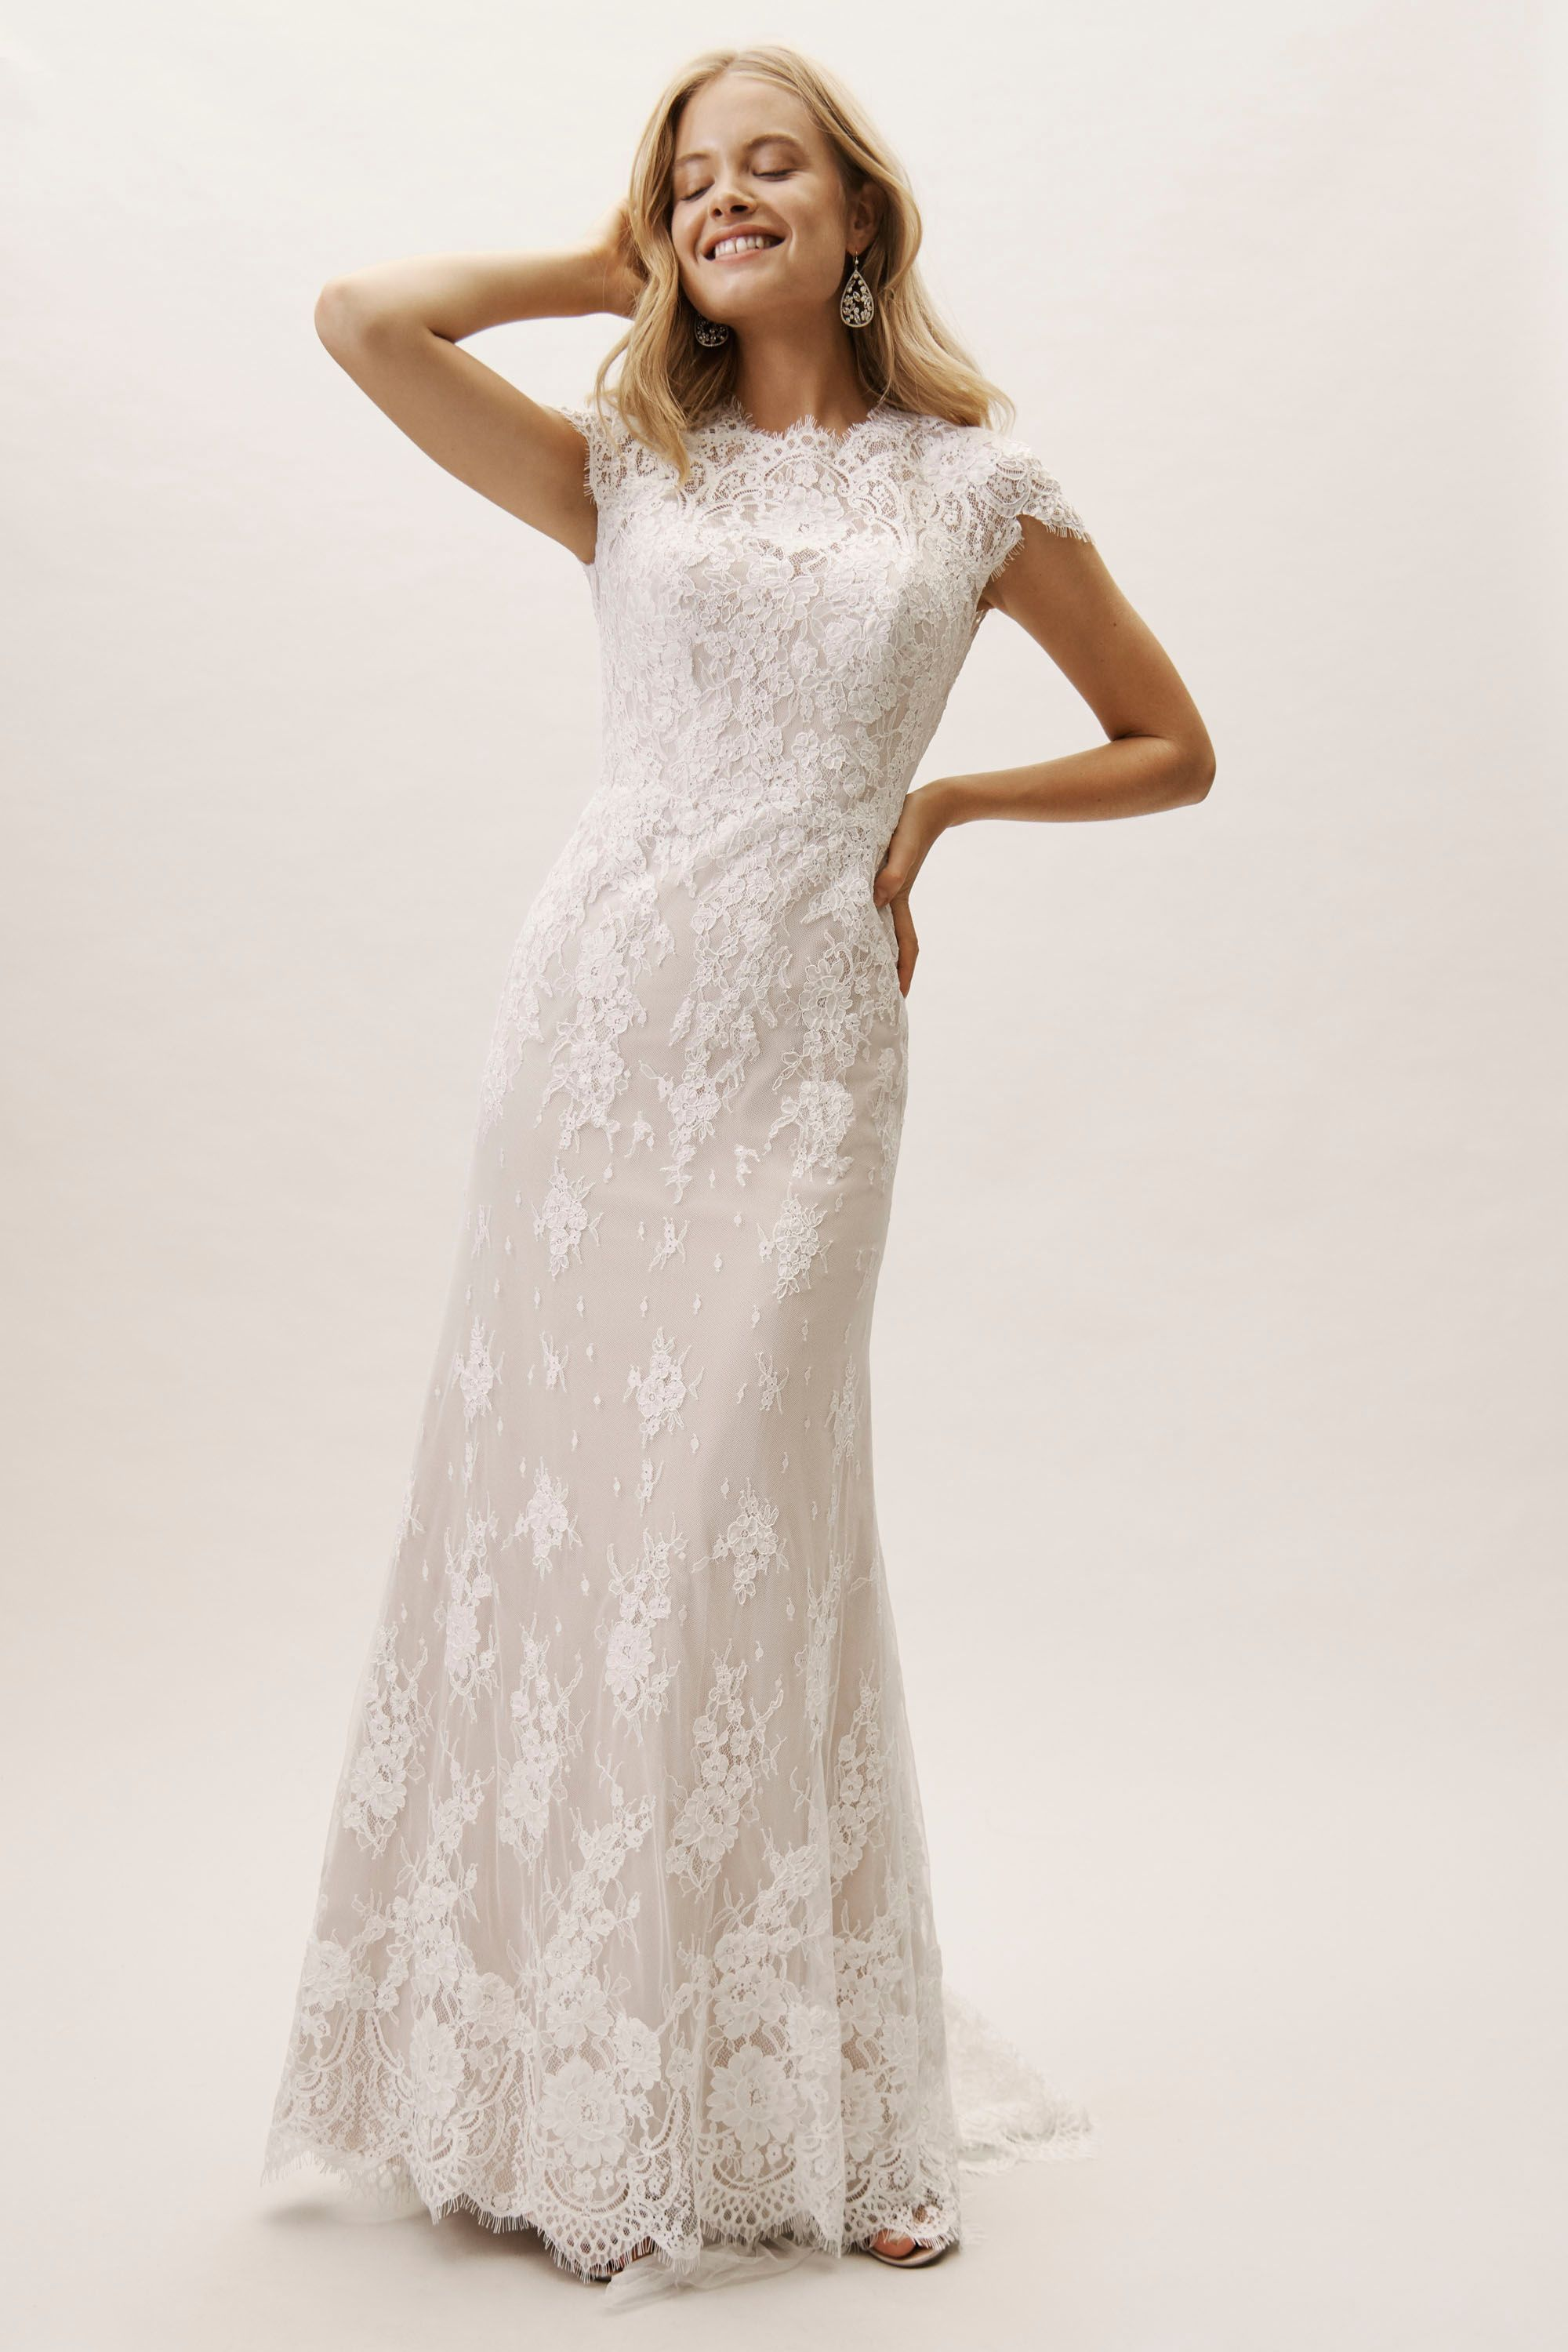 fcc1fcfd1e778 BHLDN's Wtoo by Watters Sandrine Gown in Ivory/blush in 2019 ...